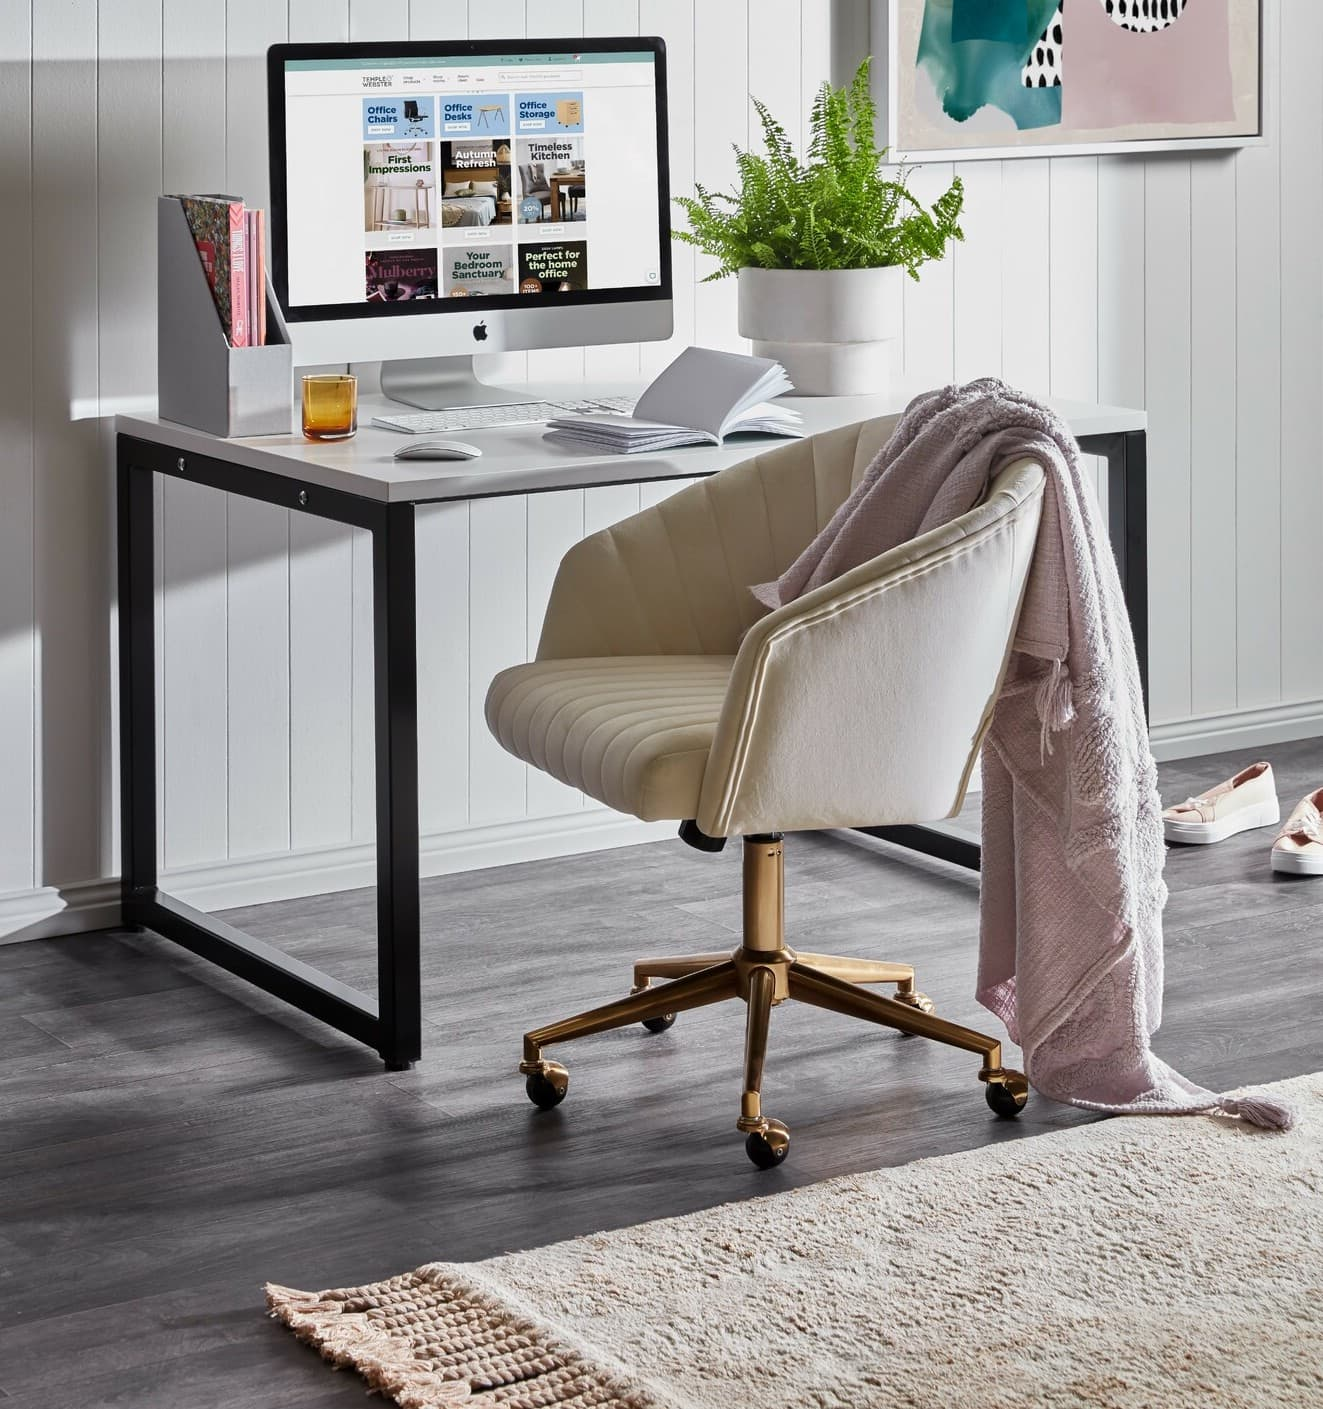 9 Best Upholstered Office Chairs on Wheels - TLC Interiors